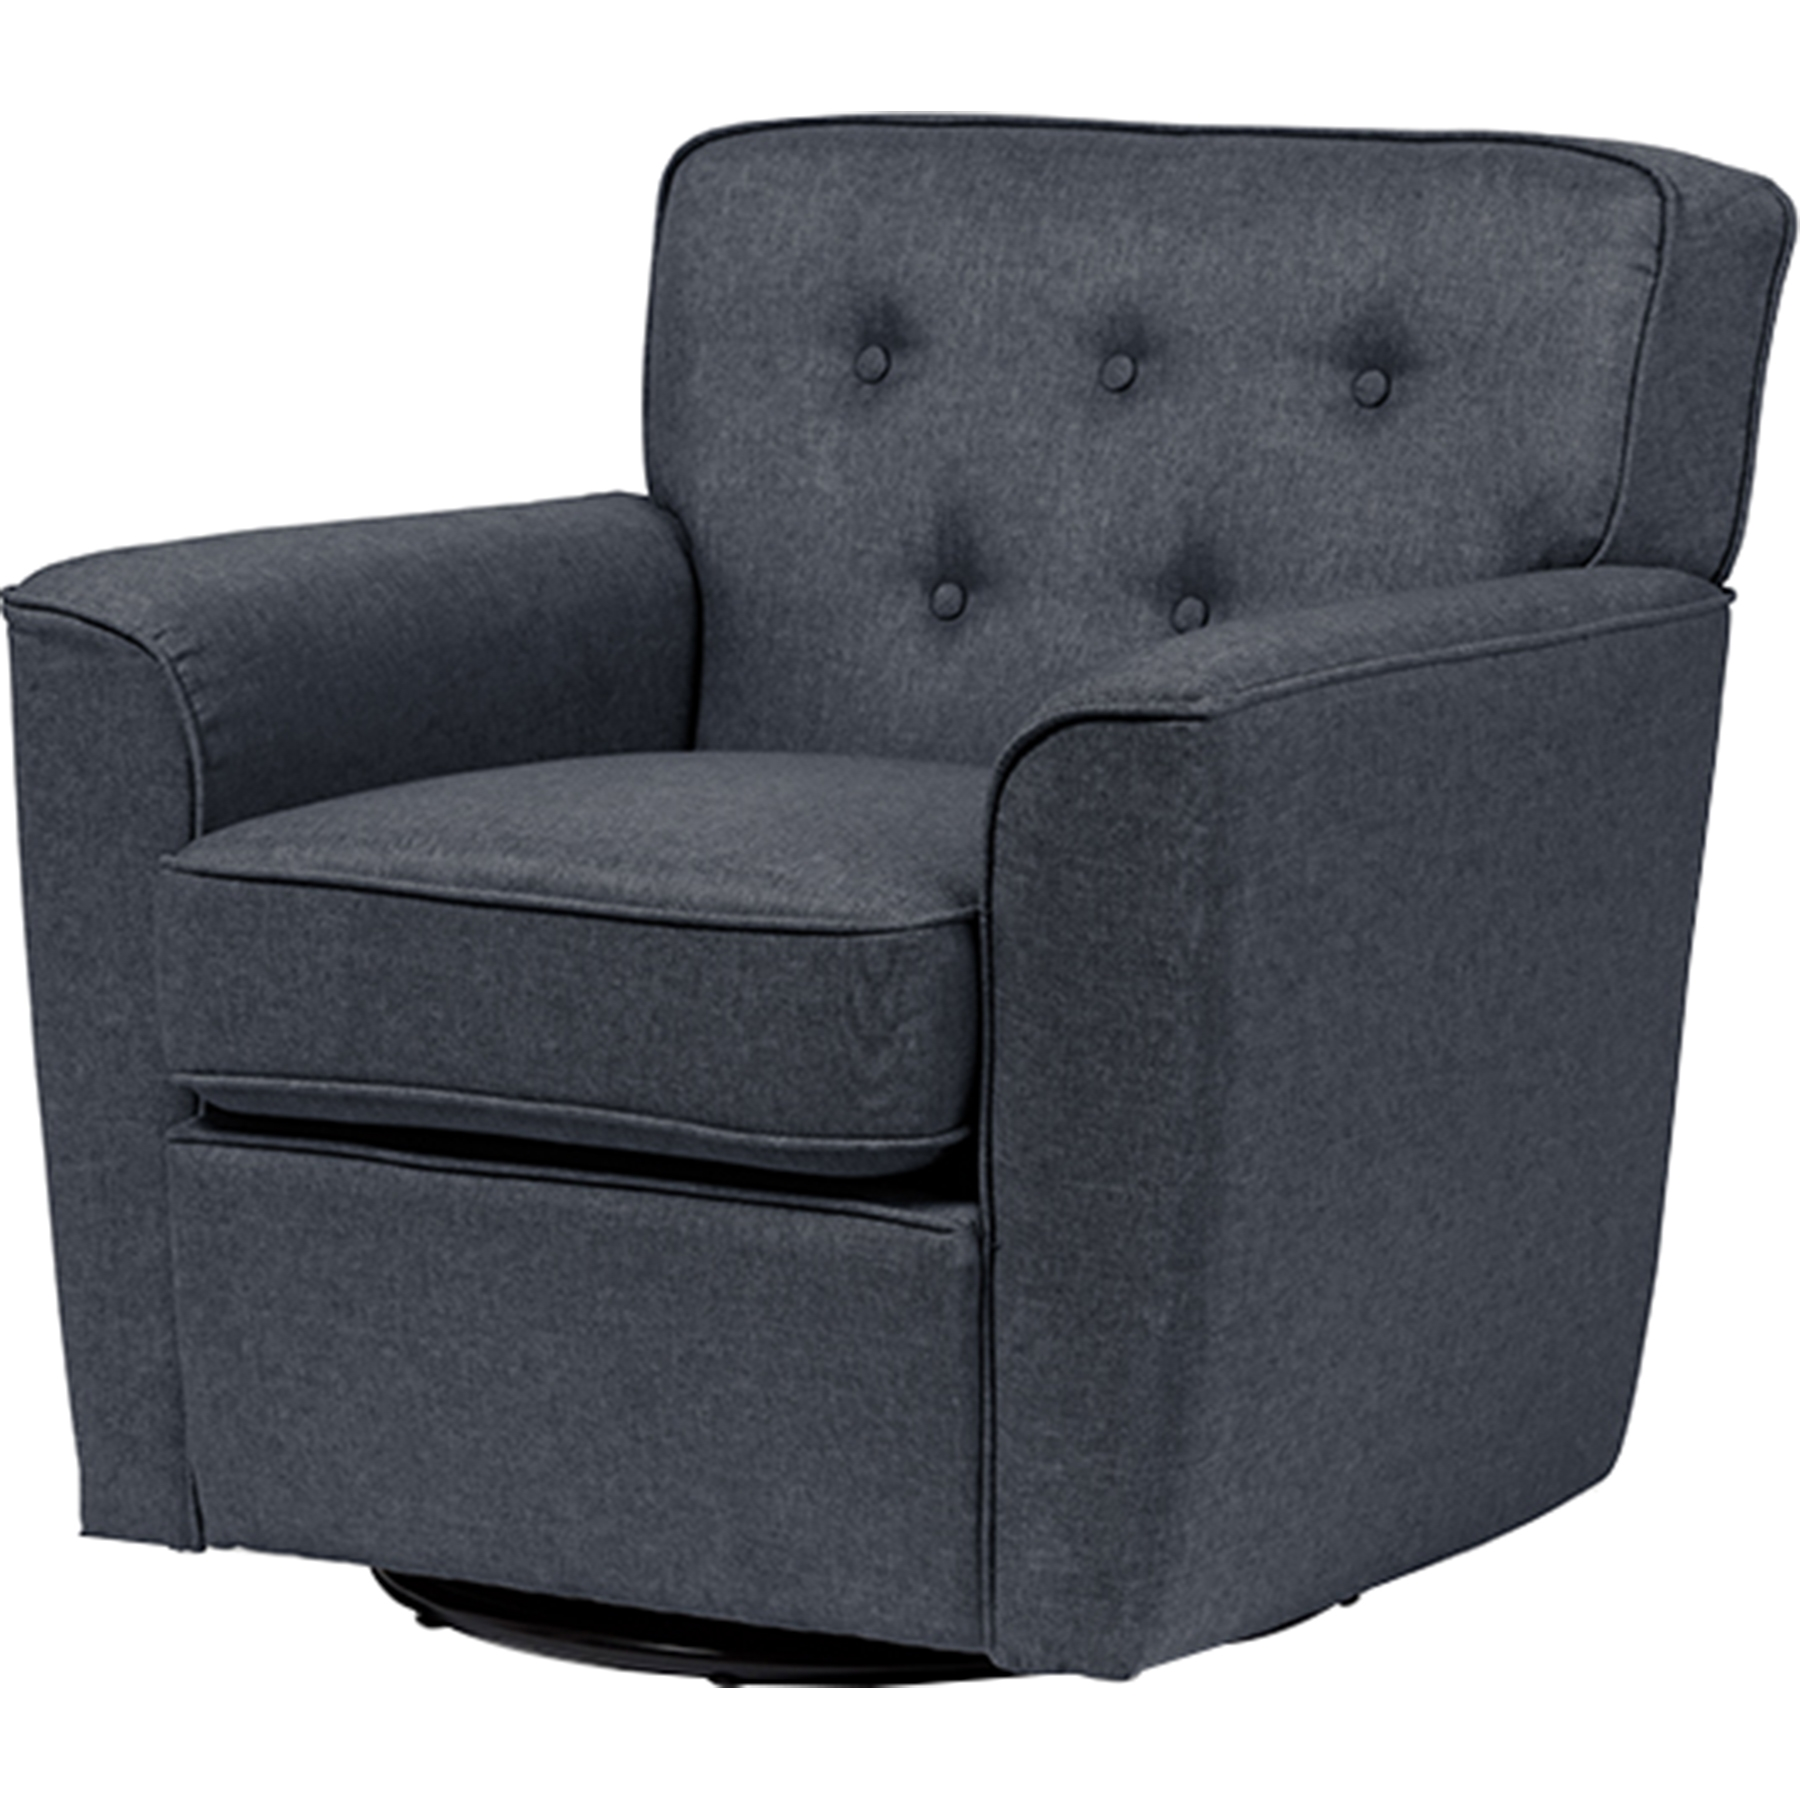 Office Chairs Canberra Canberra Fabric Upholstered Swivel Lounge Chair Button Tufted Gray